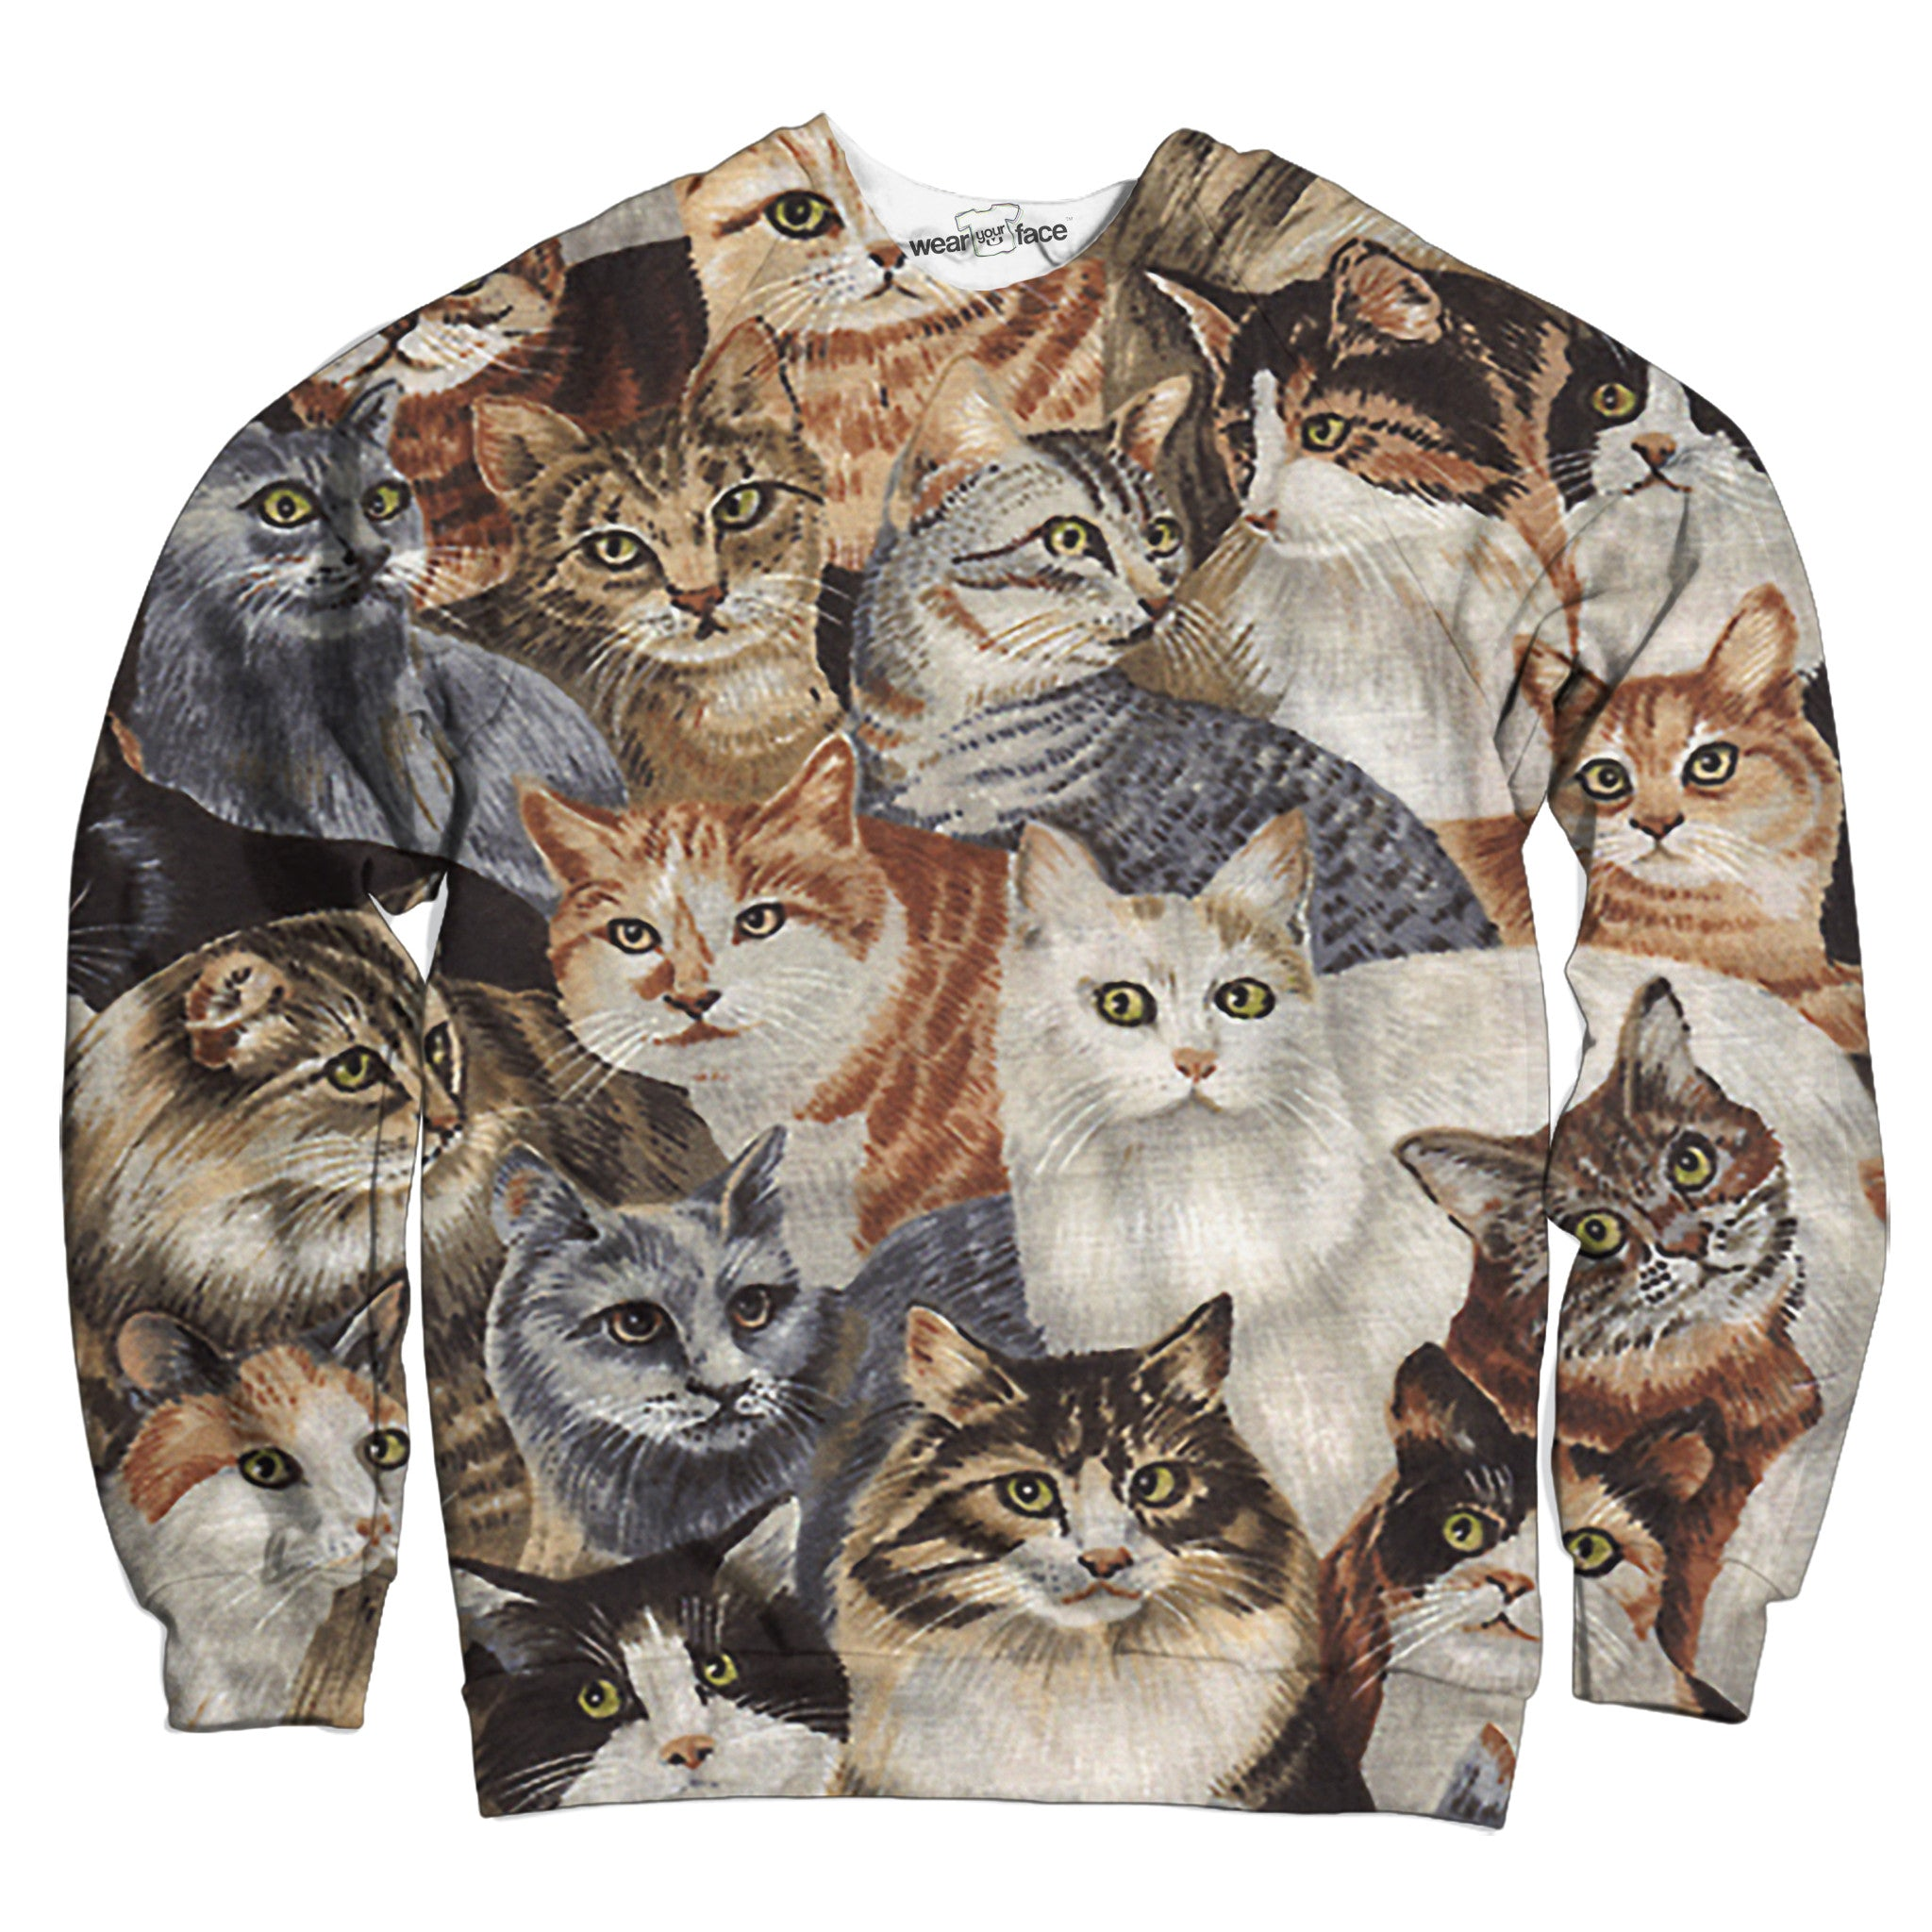 Too Many Cats Sweatshirt